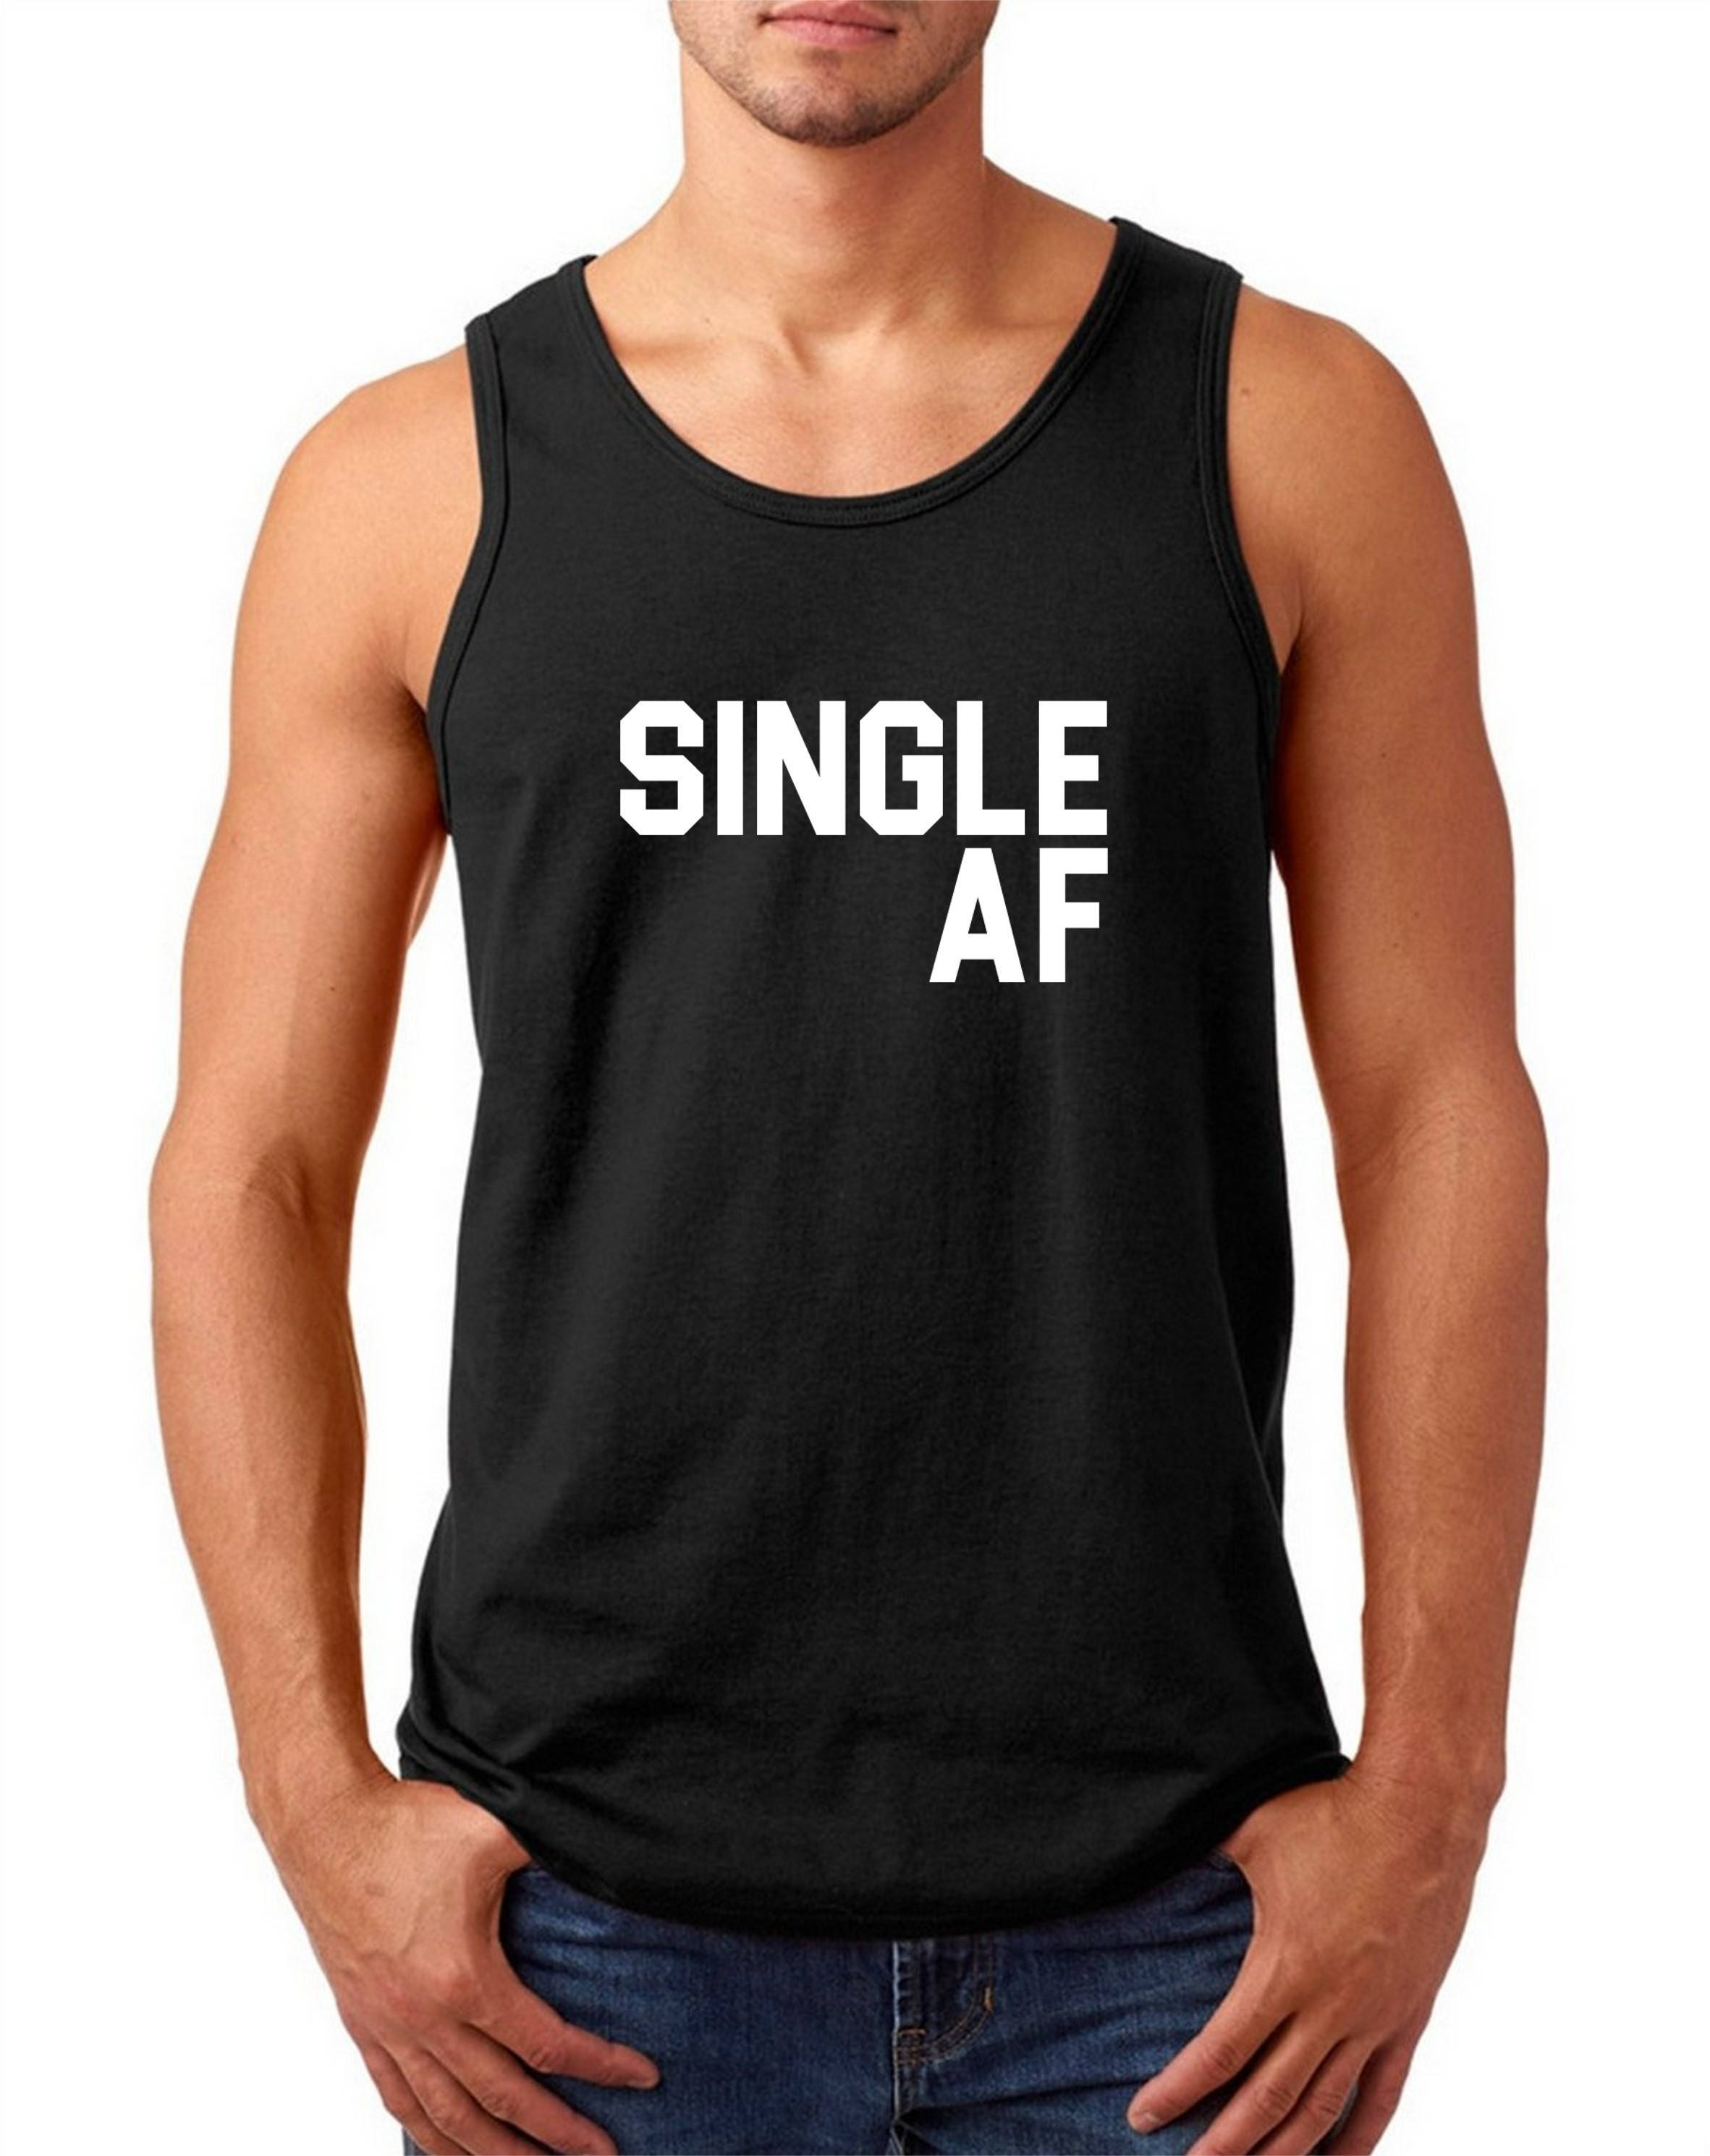 Men S Tank Top Single Af Shirt Funny Valentines T Shirt